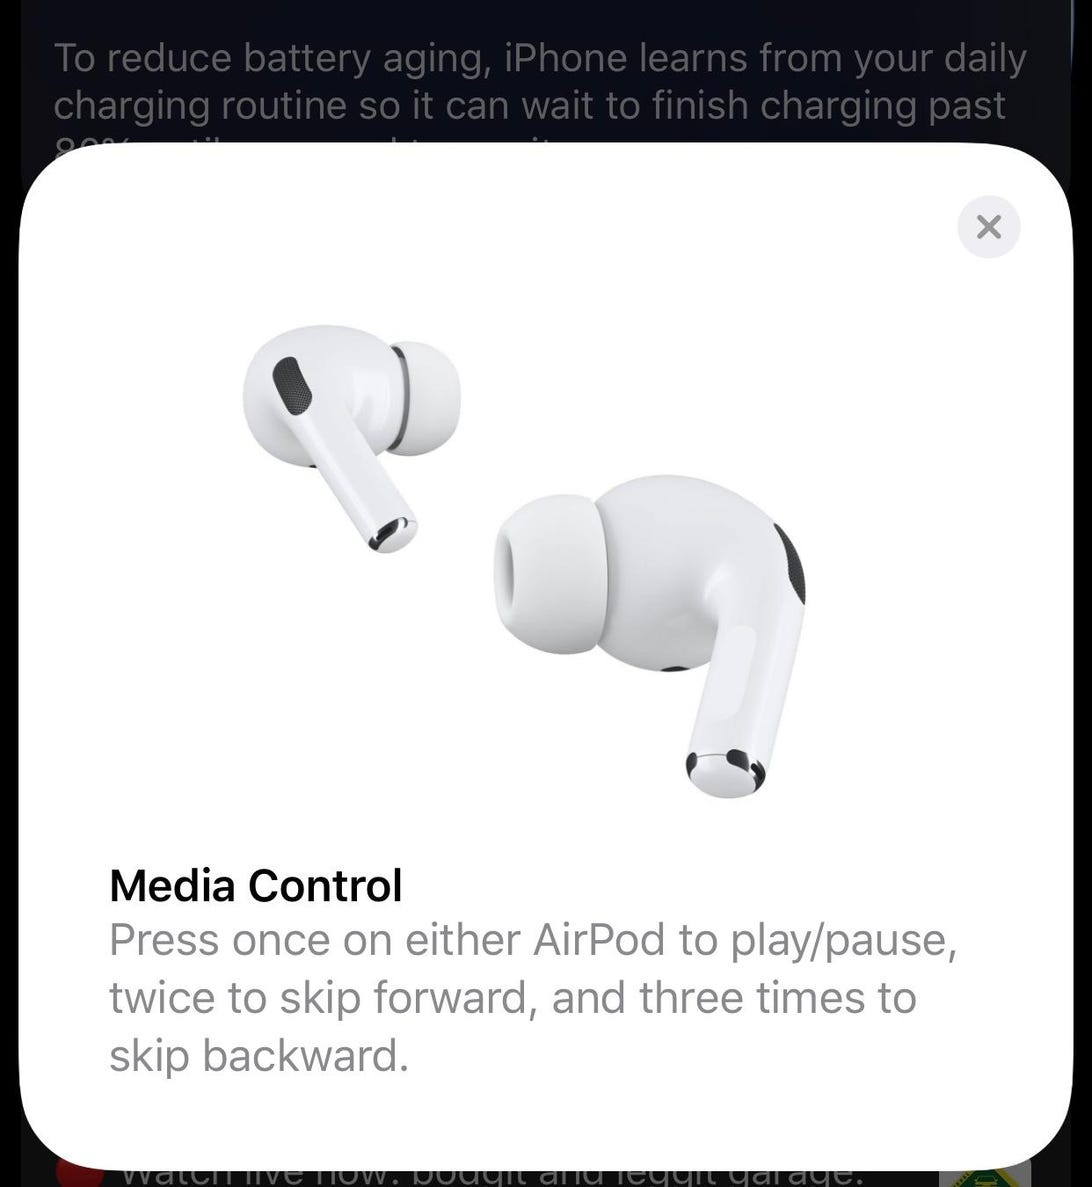 AirPods Pro integration into iOS